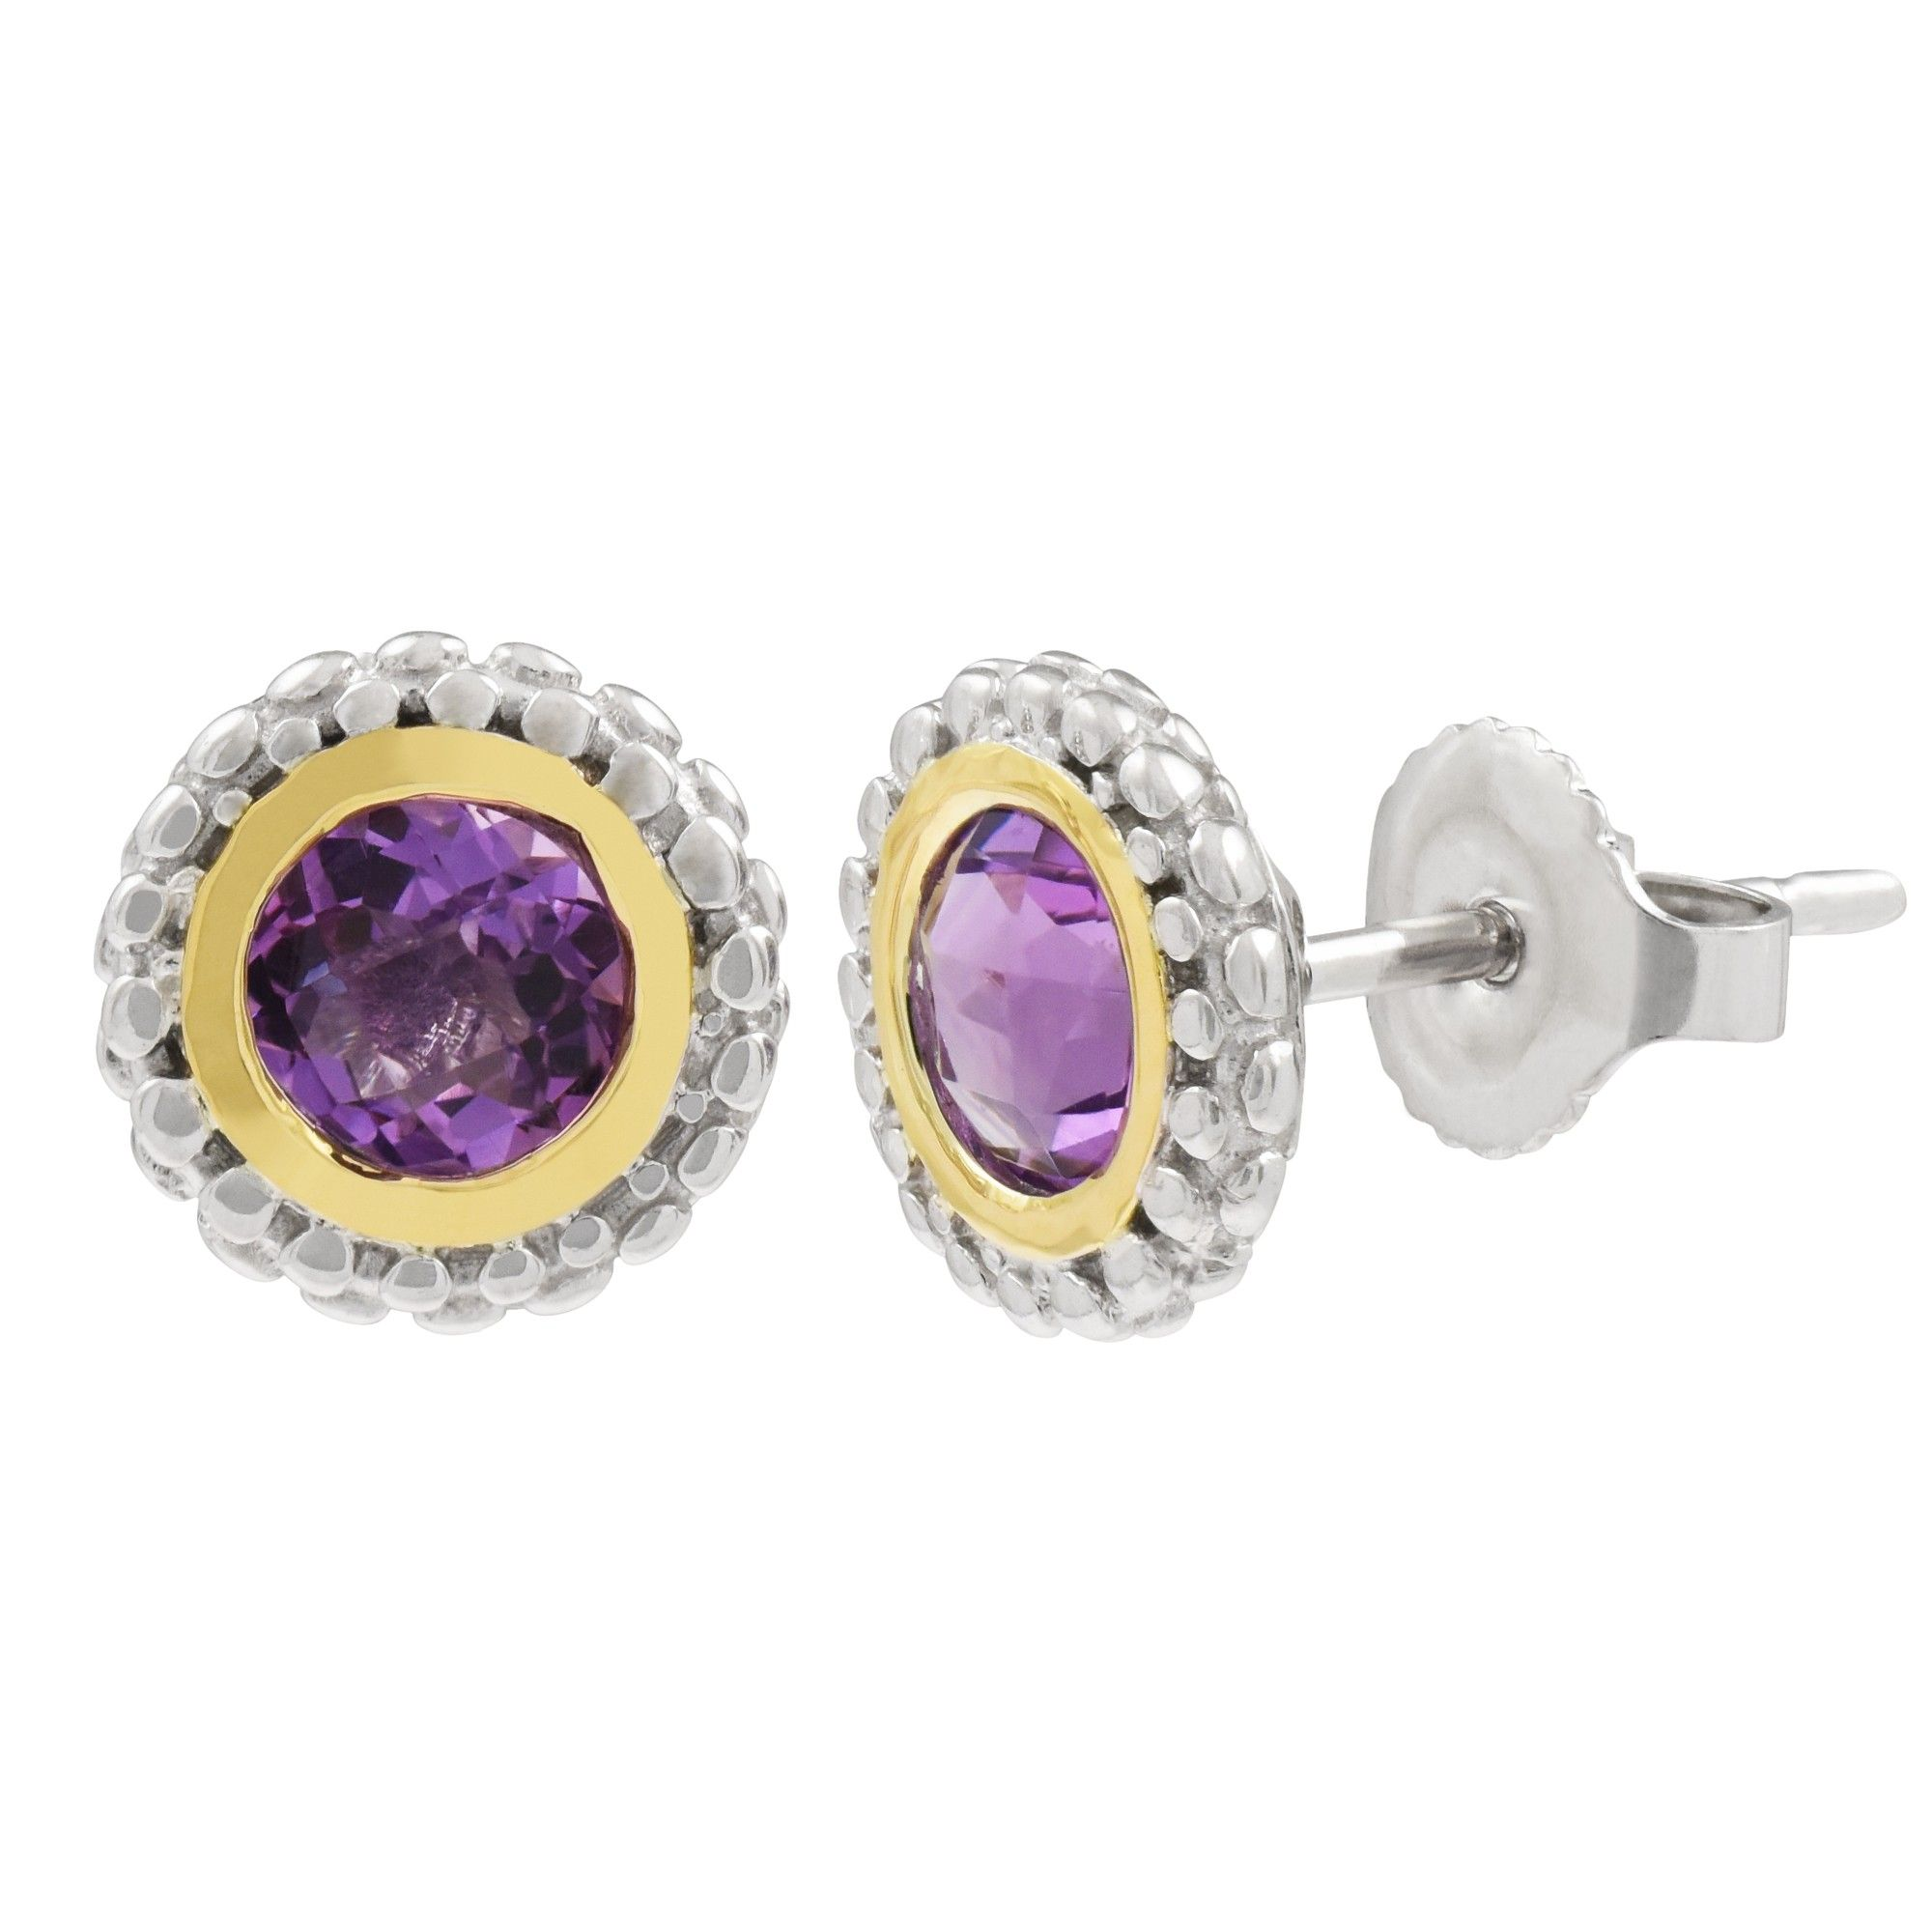 Phillip Gavriel Amethyst Stud Earrings in Sterling Silver and 18kt